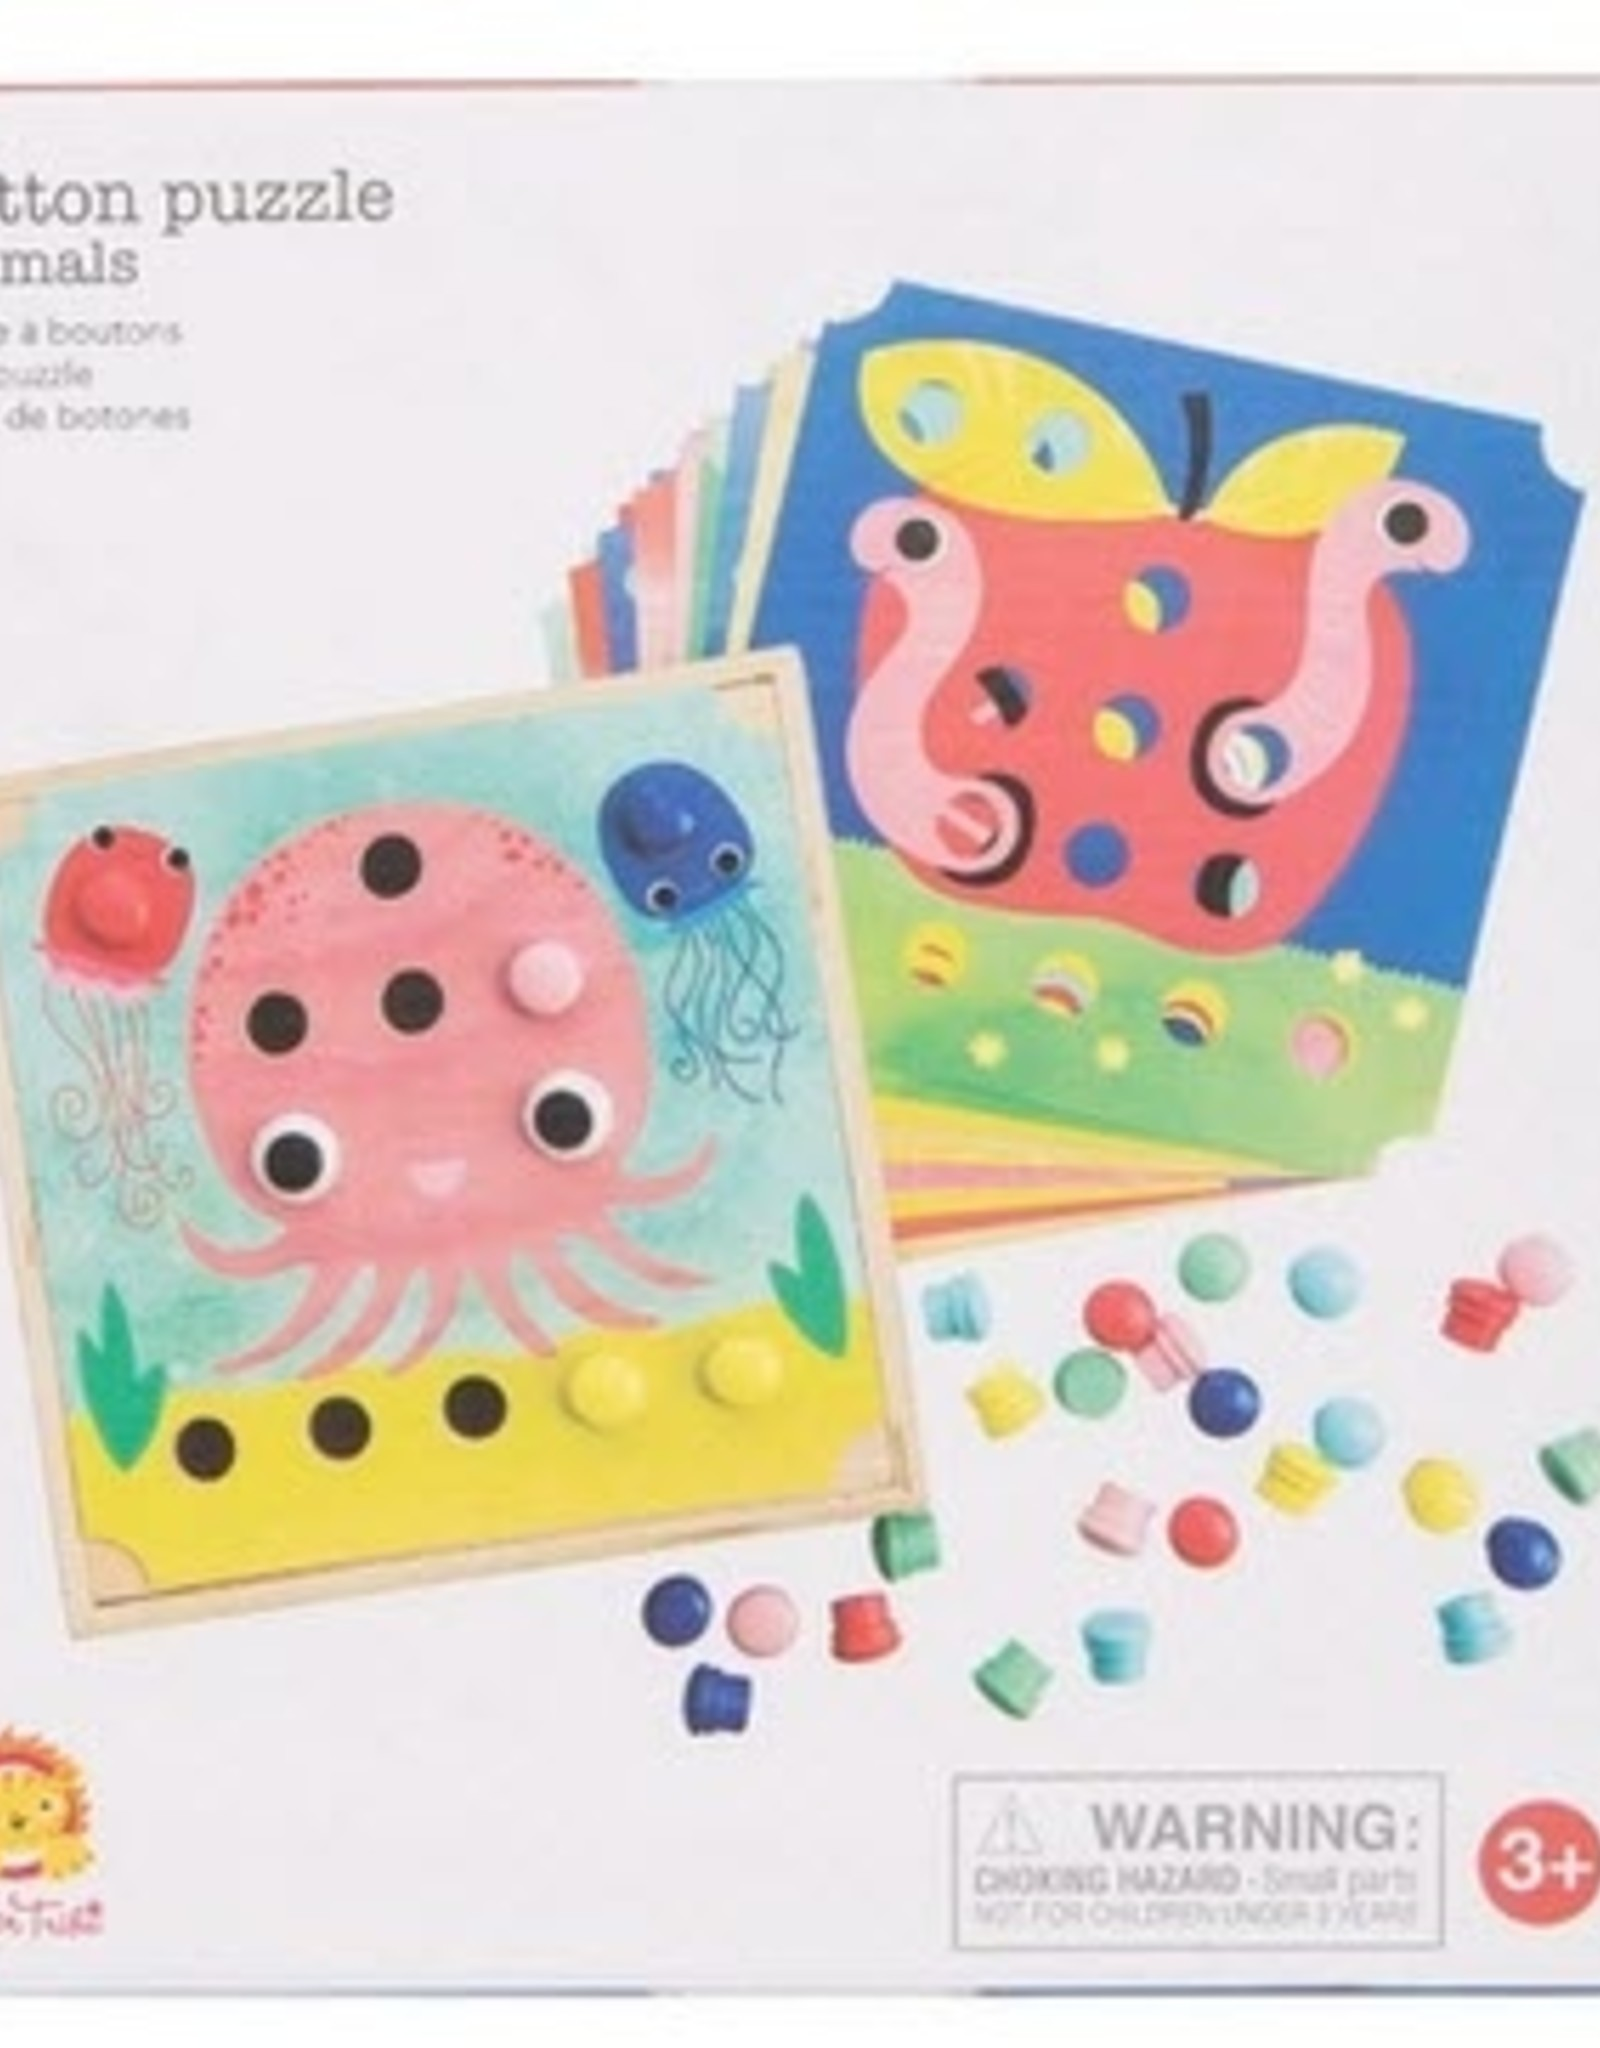 Tiger Tribe Button Puzzle Animals